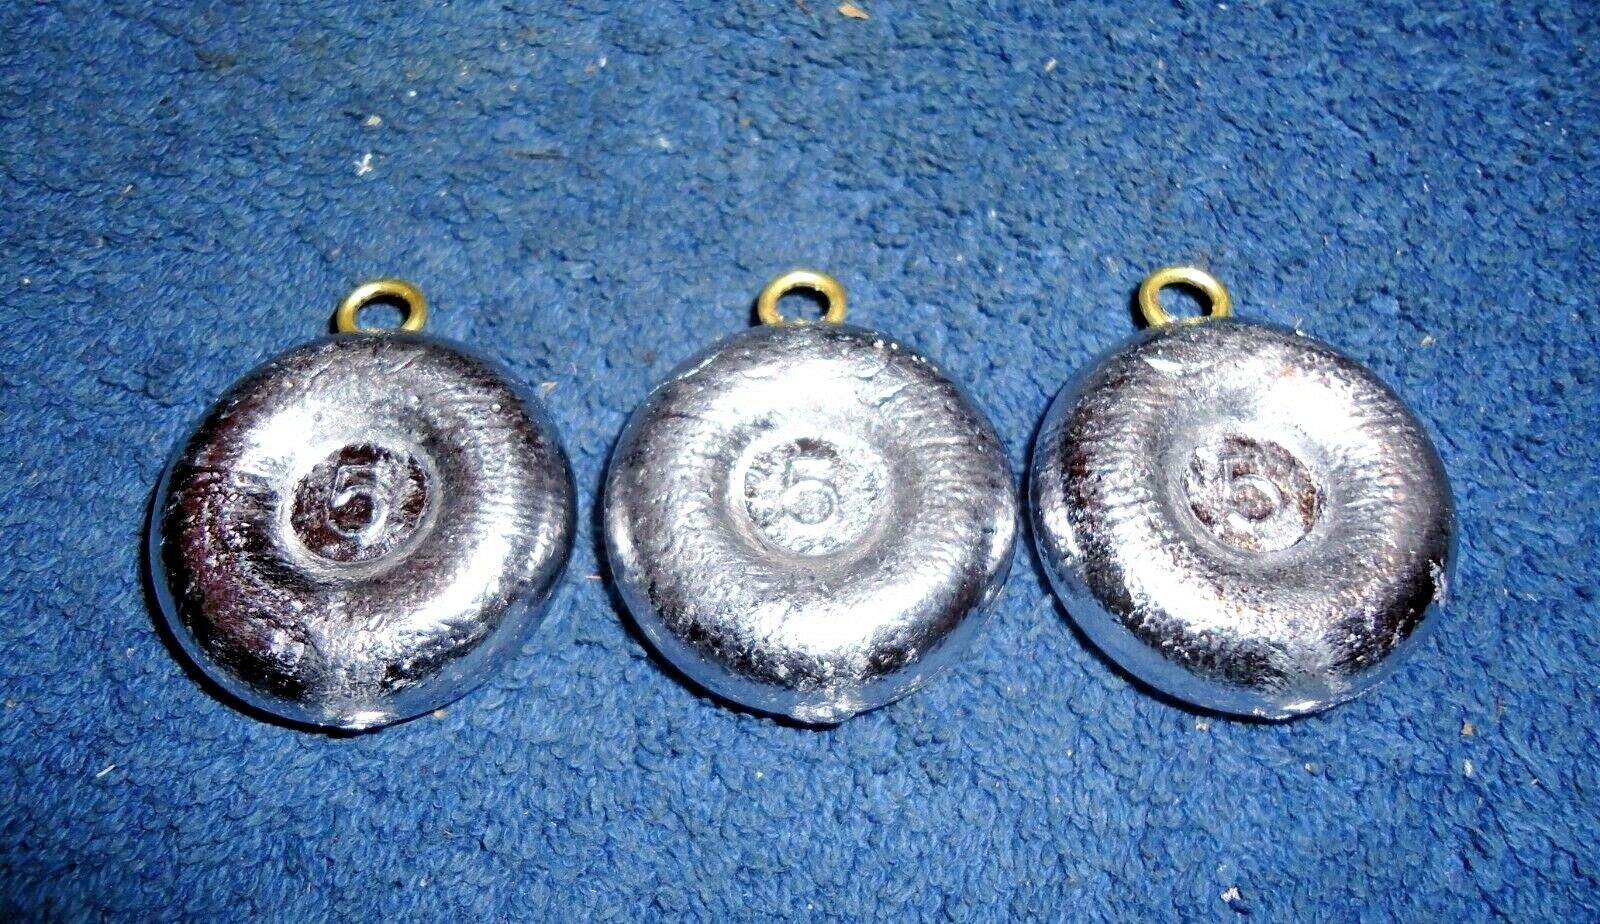 Lot of 20 River Fishing sinkers Coin 10 of each 5 and 6 oz weights